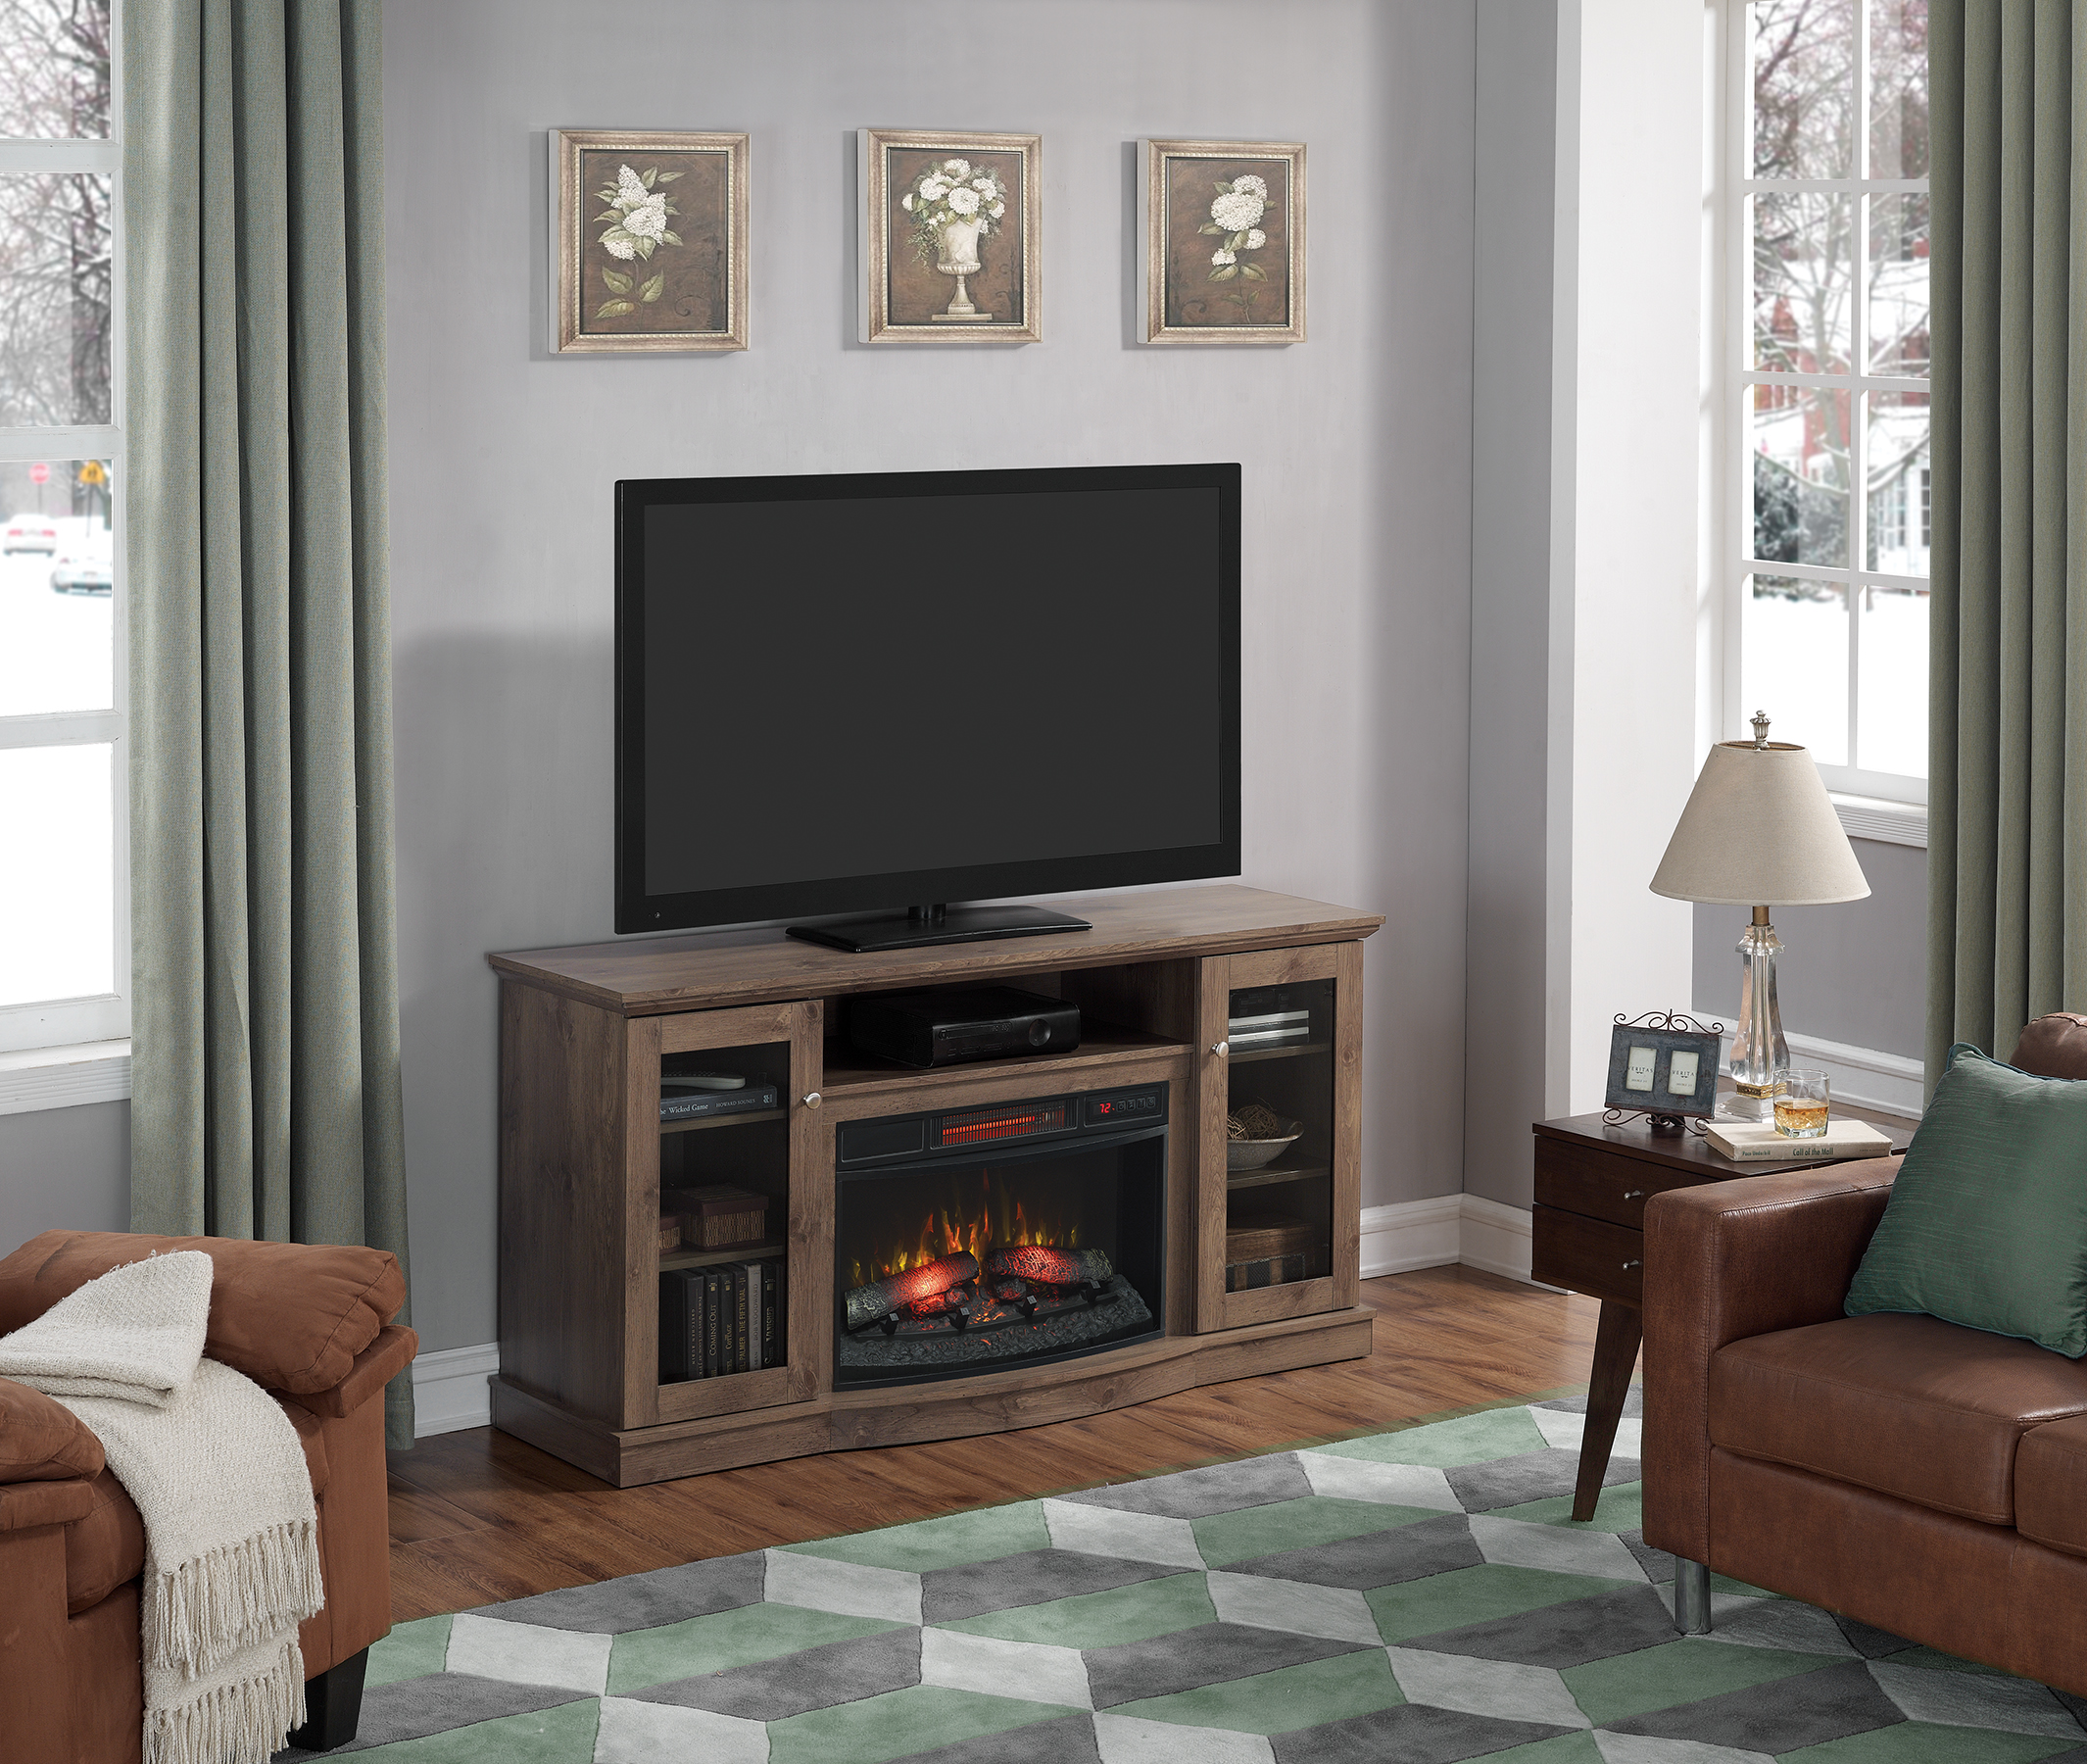 Chimneyfree Media Electric Up Tvs For Fireplace To 65 Multiple